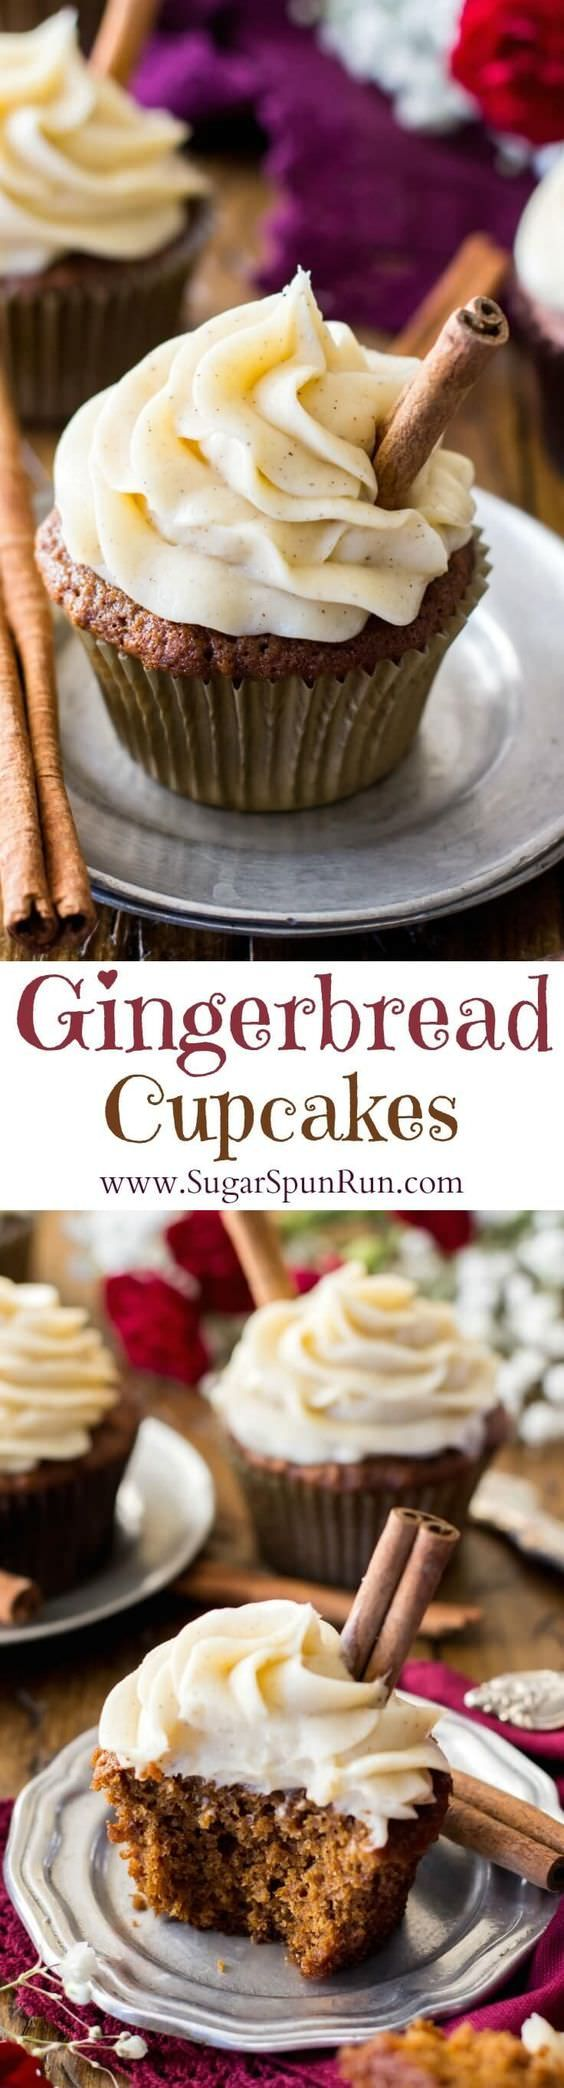 Spicy Gingerbread Cupcakes